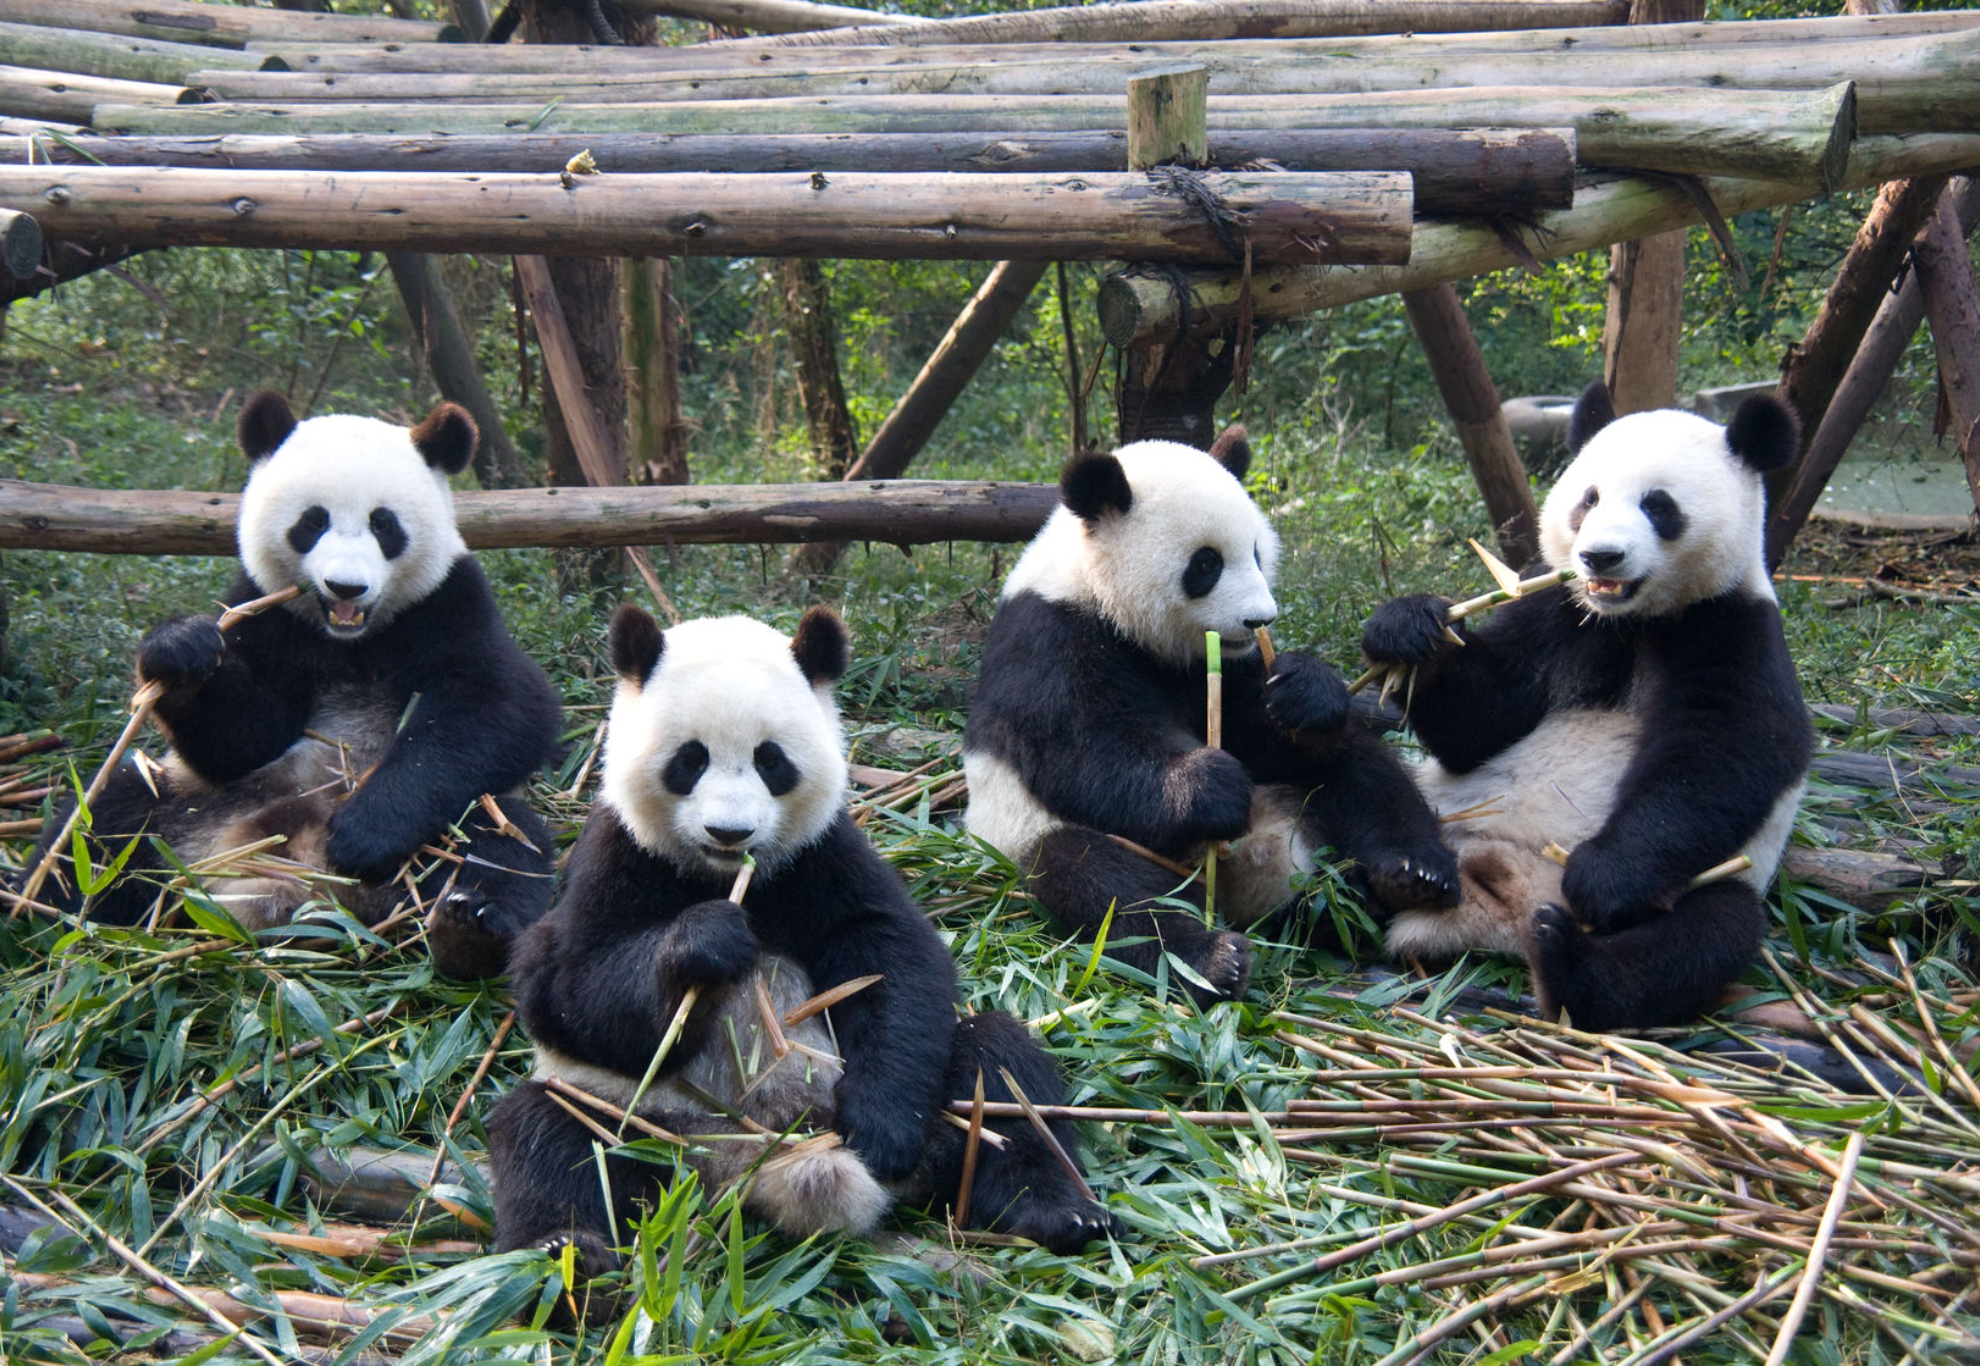 Geography School Trip To China 10 Days